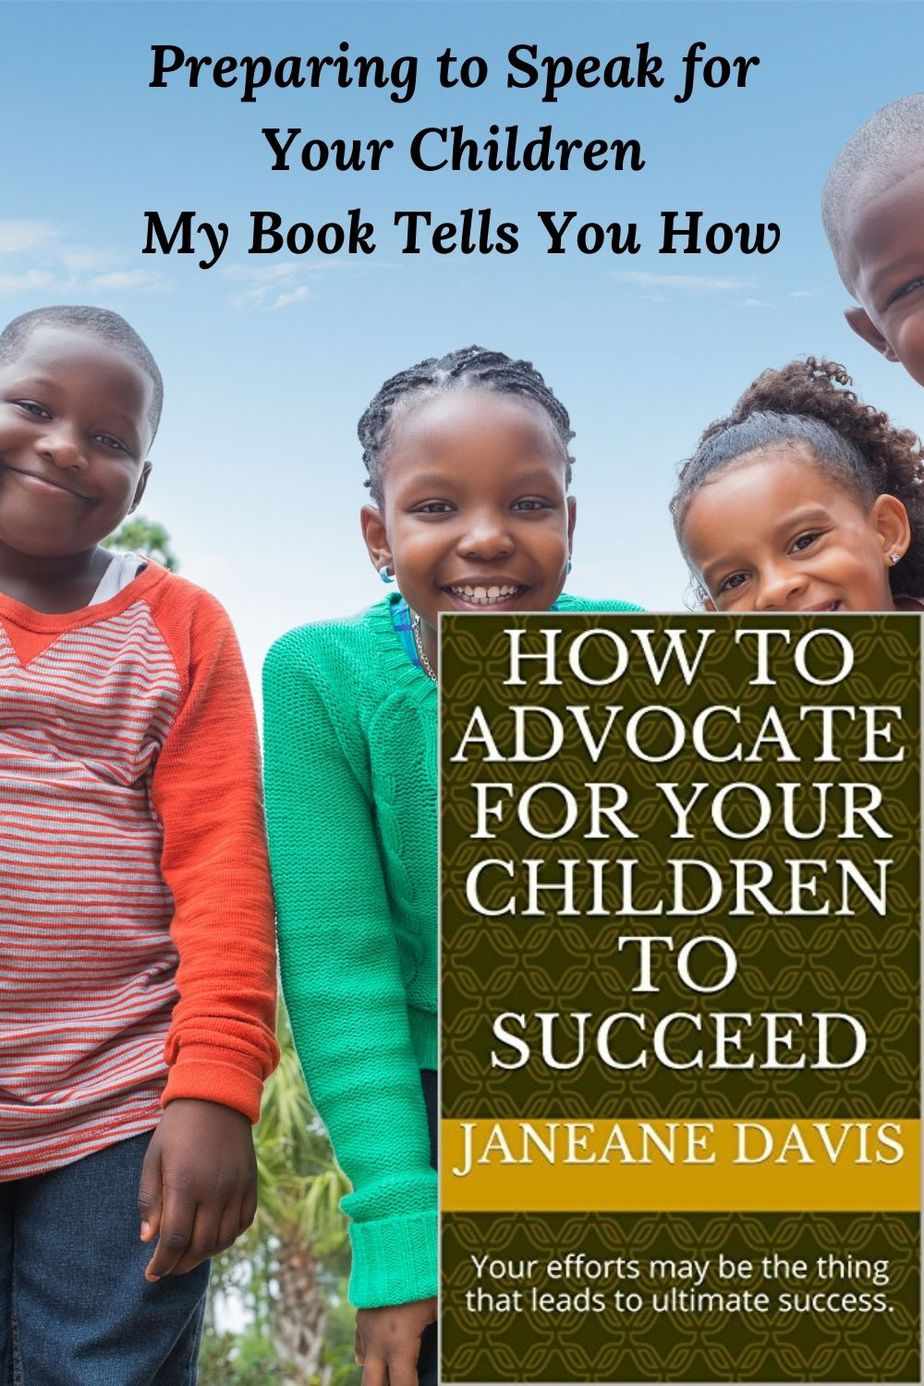 4 Smiling African American children and teh words Preparing-to-Speak-for-Your-Children and cover of teh book How t5o Advocate for Your Childress